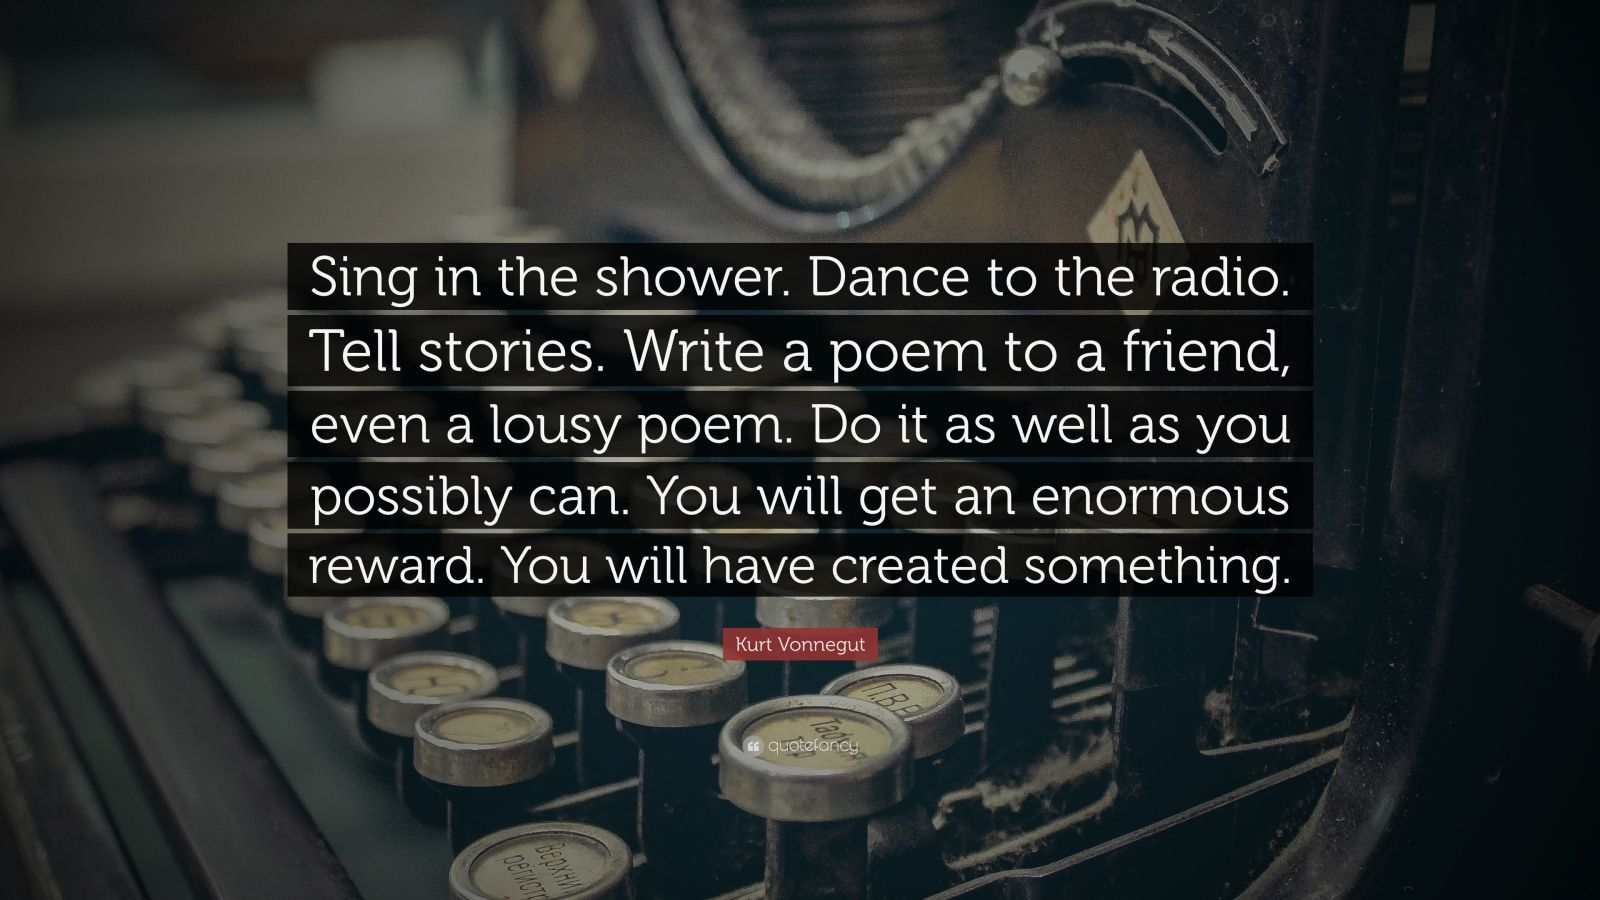 """Kurt Vonnegut Quote: """"Sing in the shower. Dance to the radio. Tell stories. Write a poem to a friend, even a lousy poem. Do it as well as you possibly can. You will get an enormous reward. You will have created something."""""""